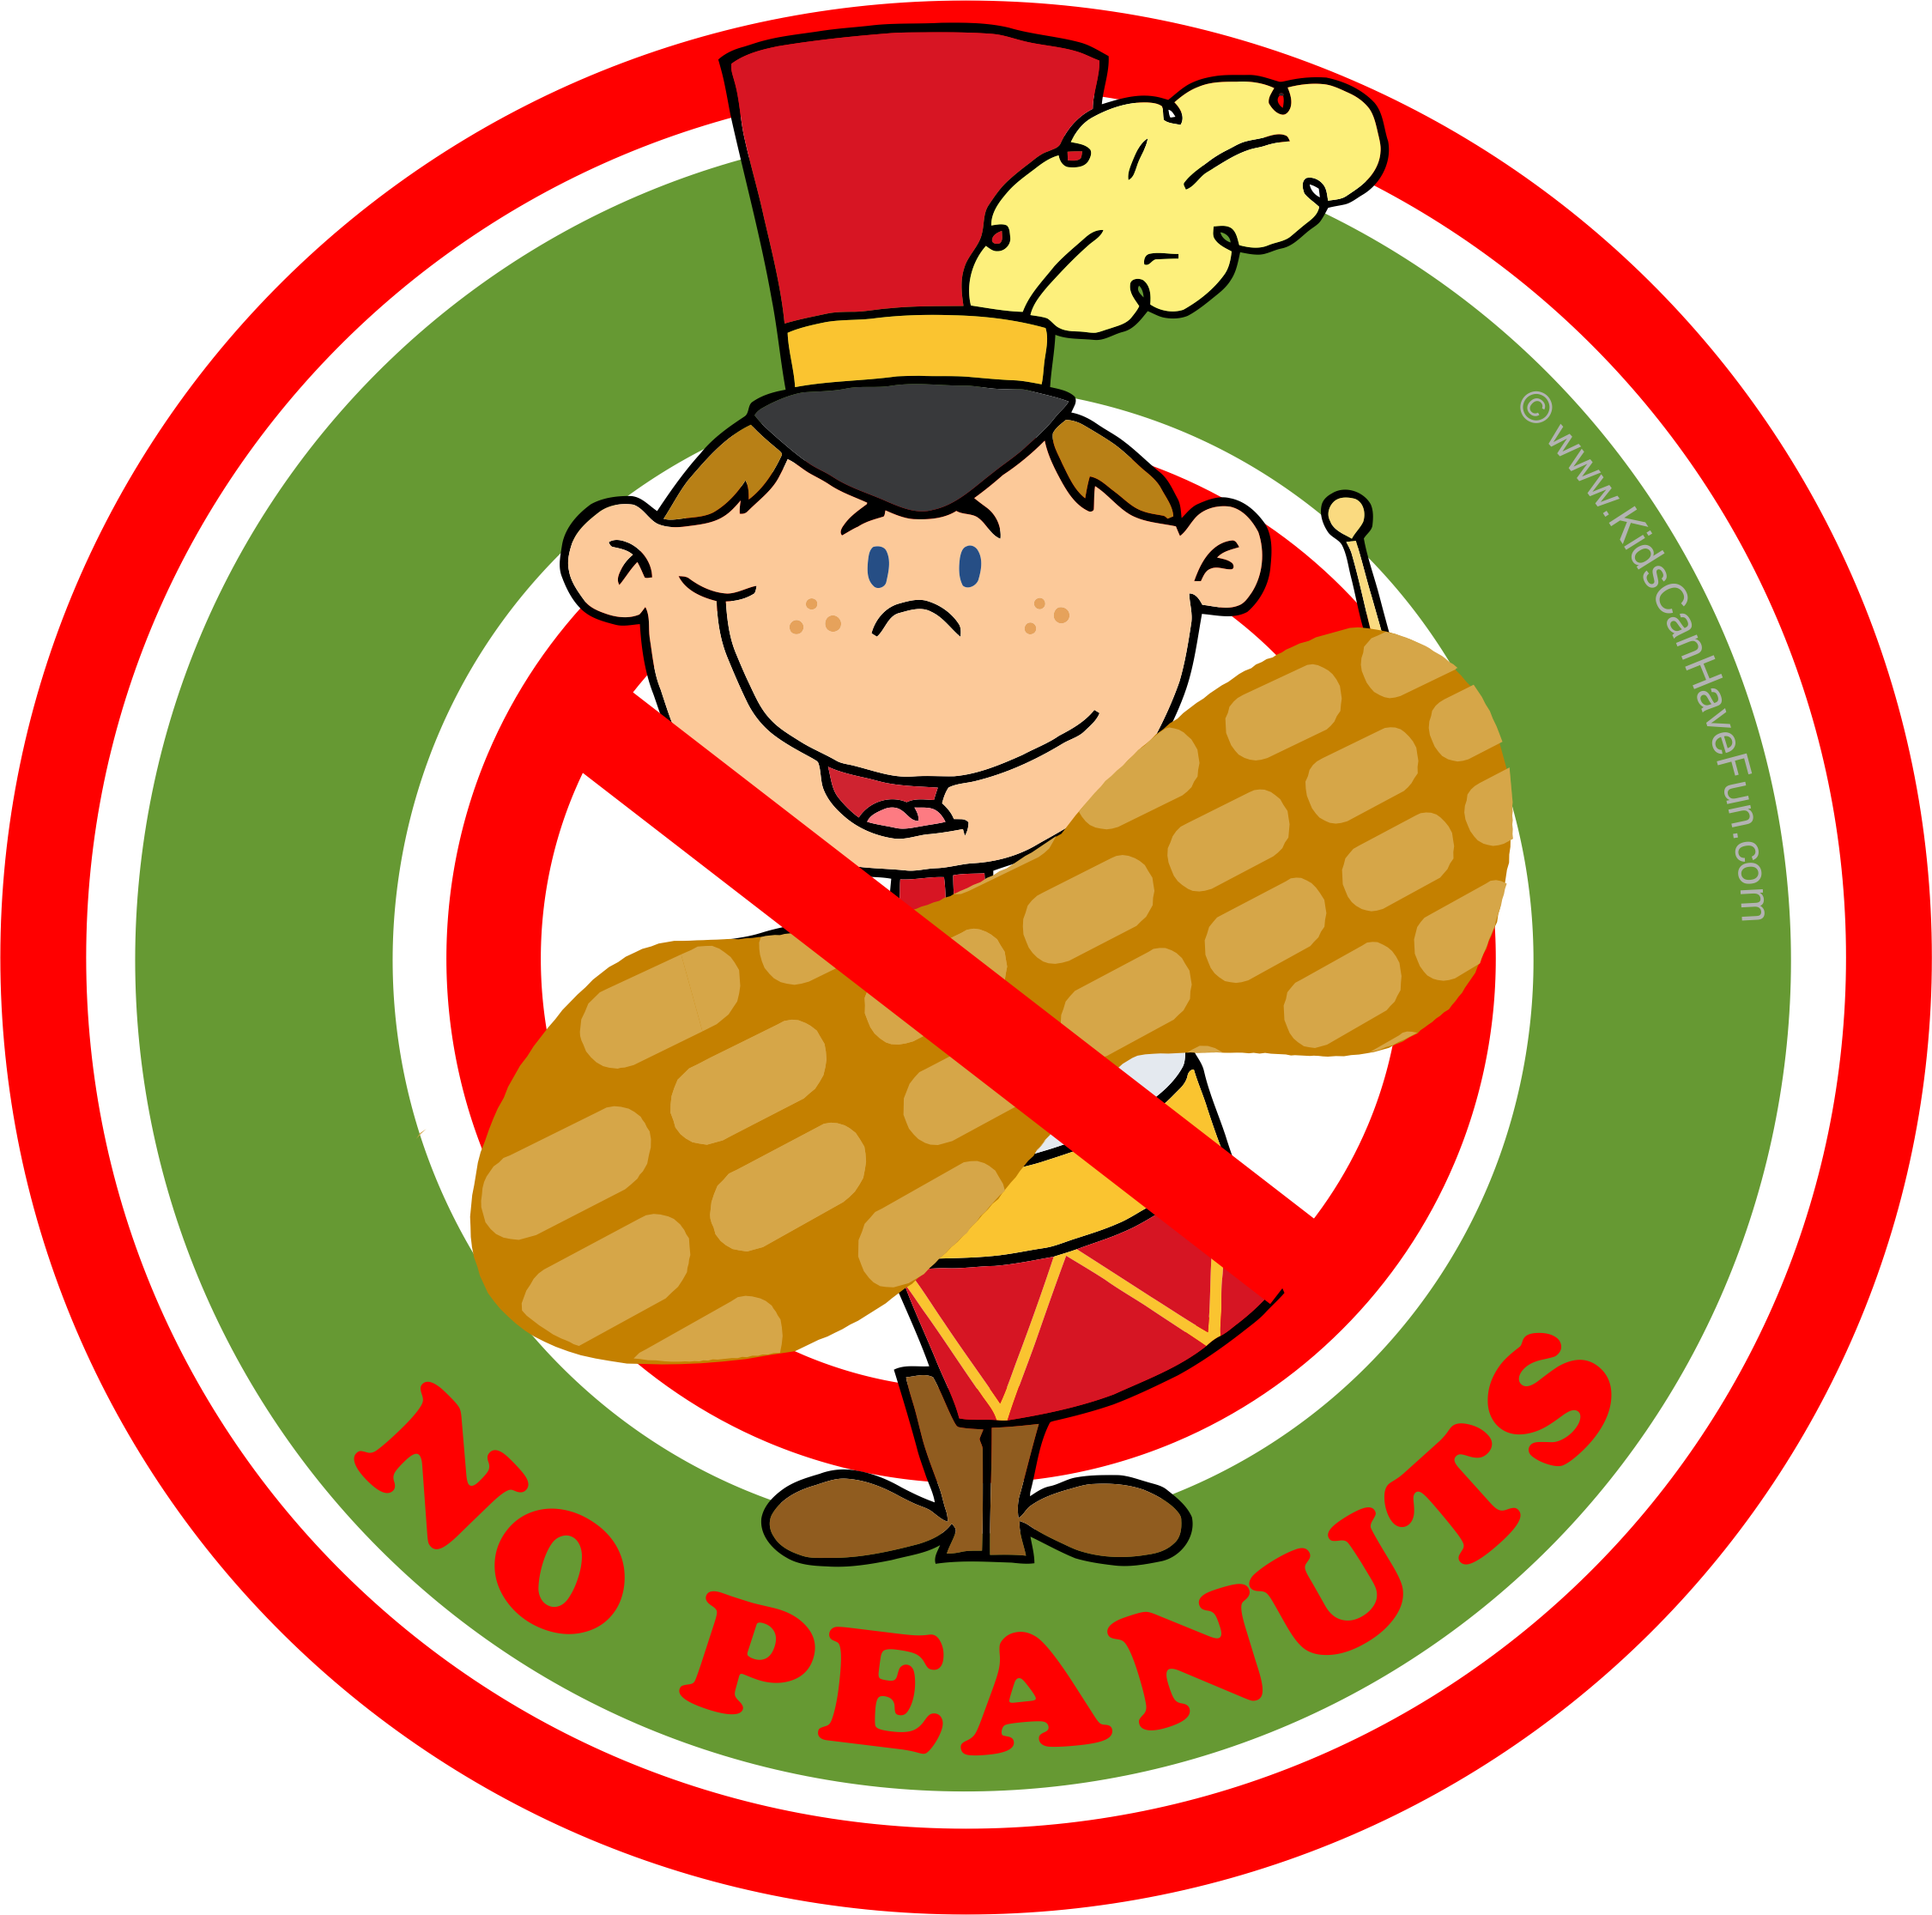 Christmas Drummer Boy No Peanuts Label Nut Free, Dairy.